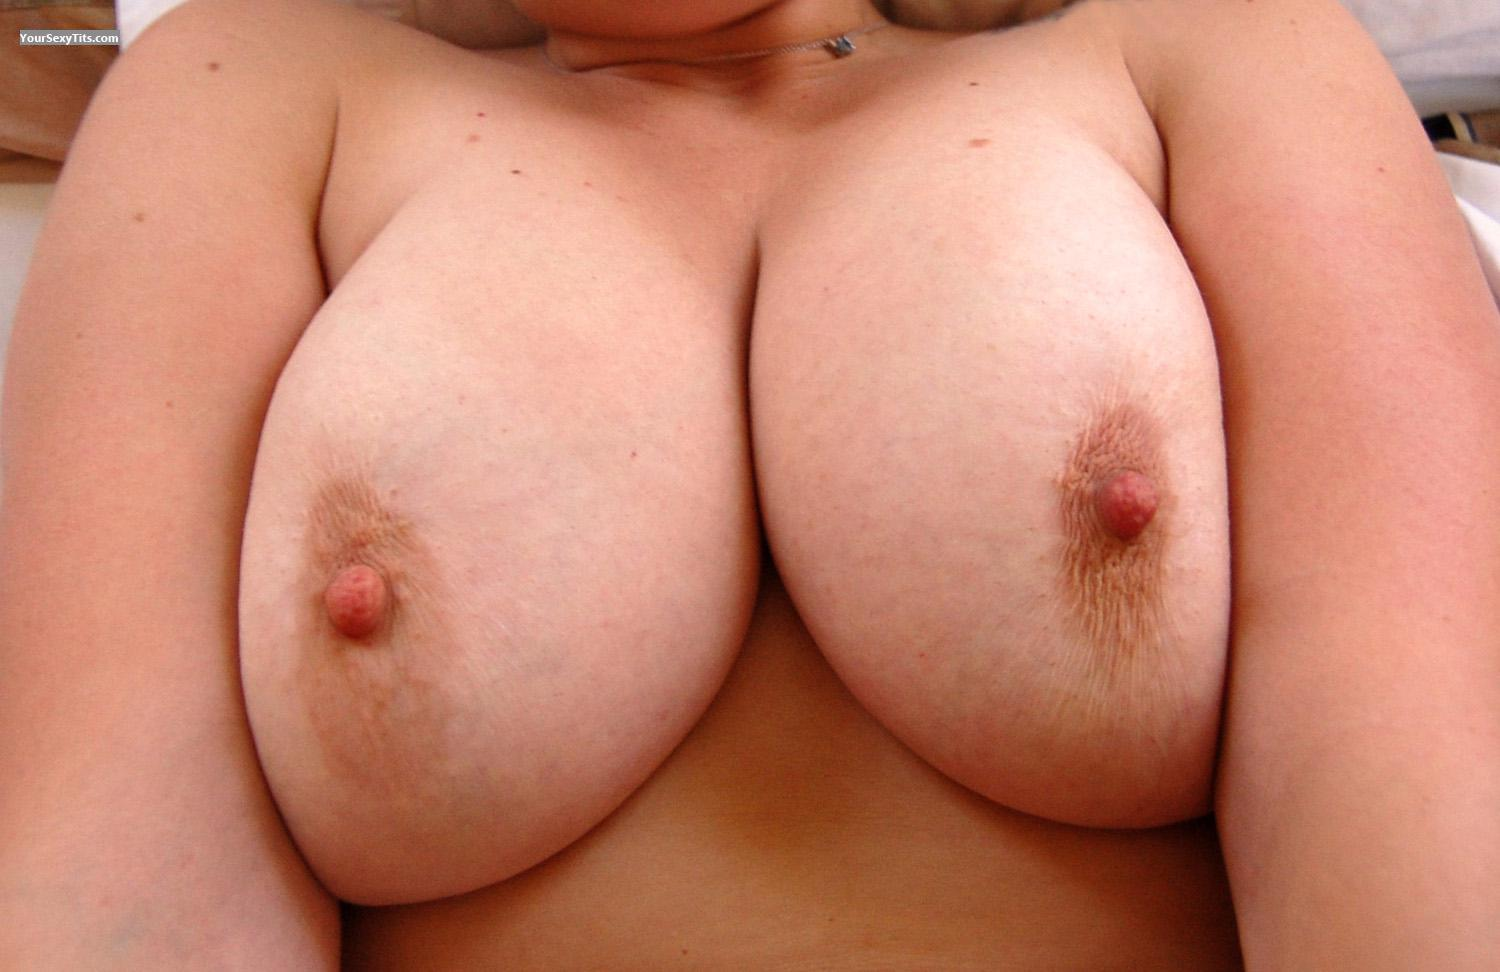 Tit Flash: Ex-Girlfriend's Very Big Tits - Seadragon from United States